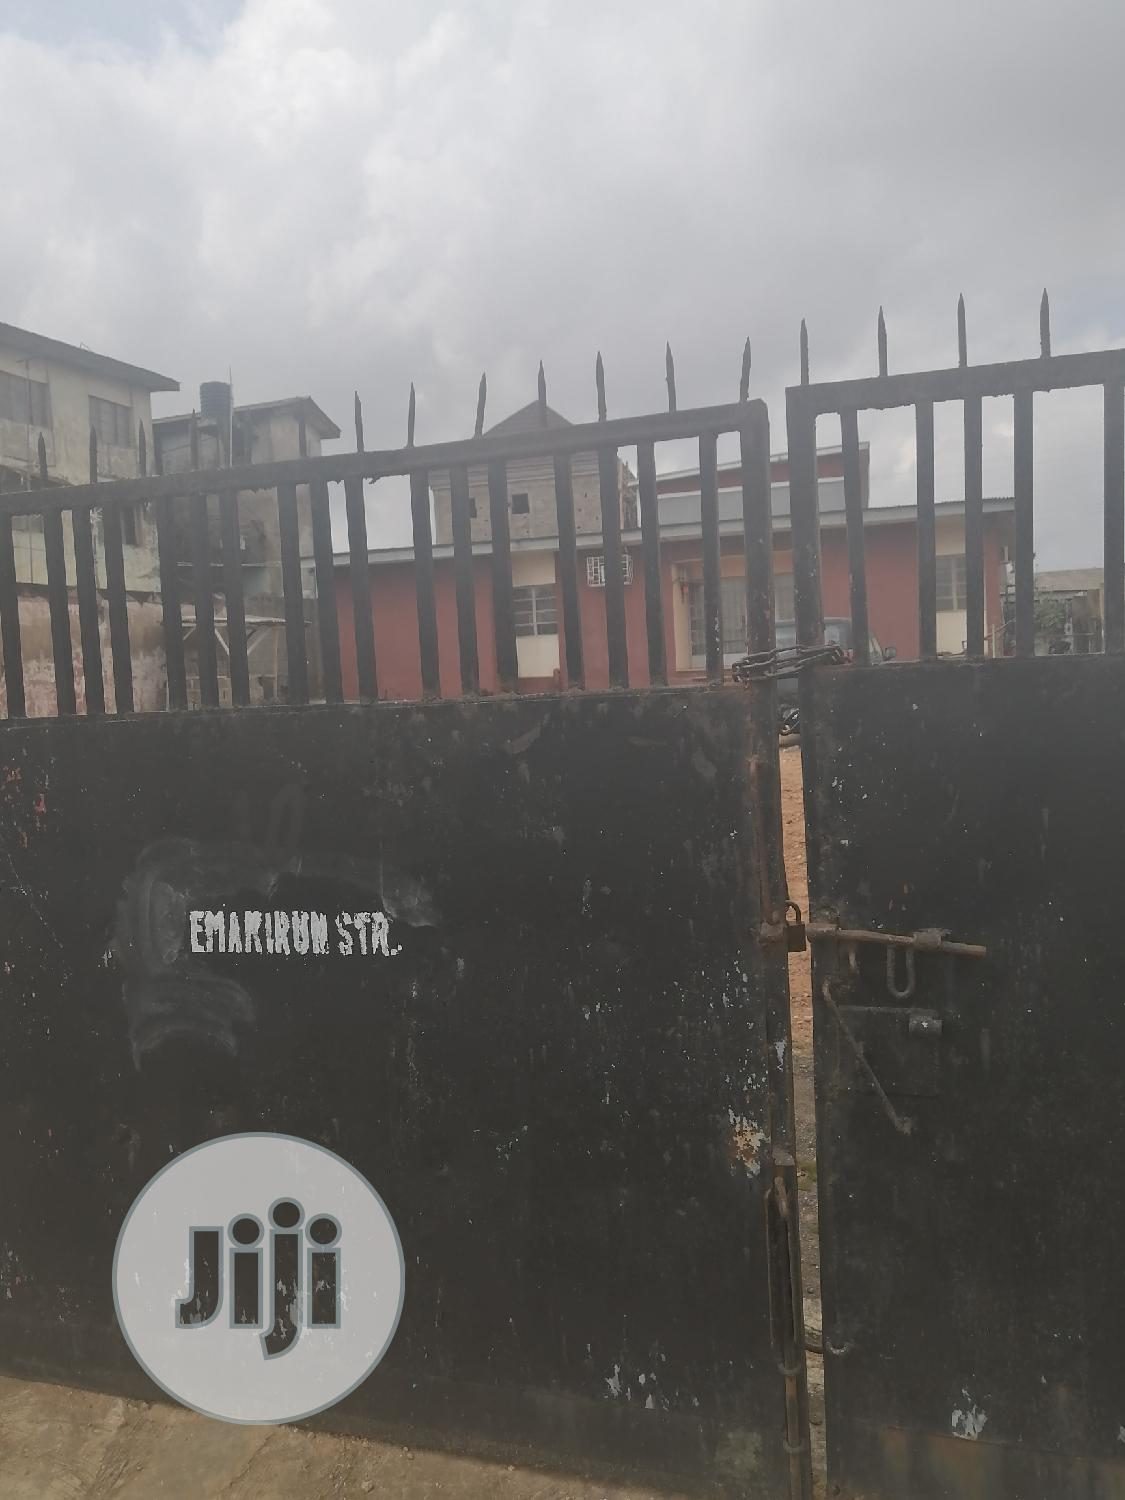 Half Plot Of Table Land For Sale At Ojodu Berger Lagos State | Land & Plots For Sale for sale in Ojodu, Lagos State, Nigeria